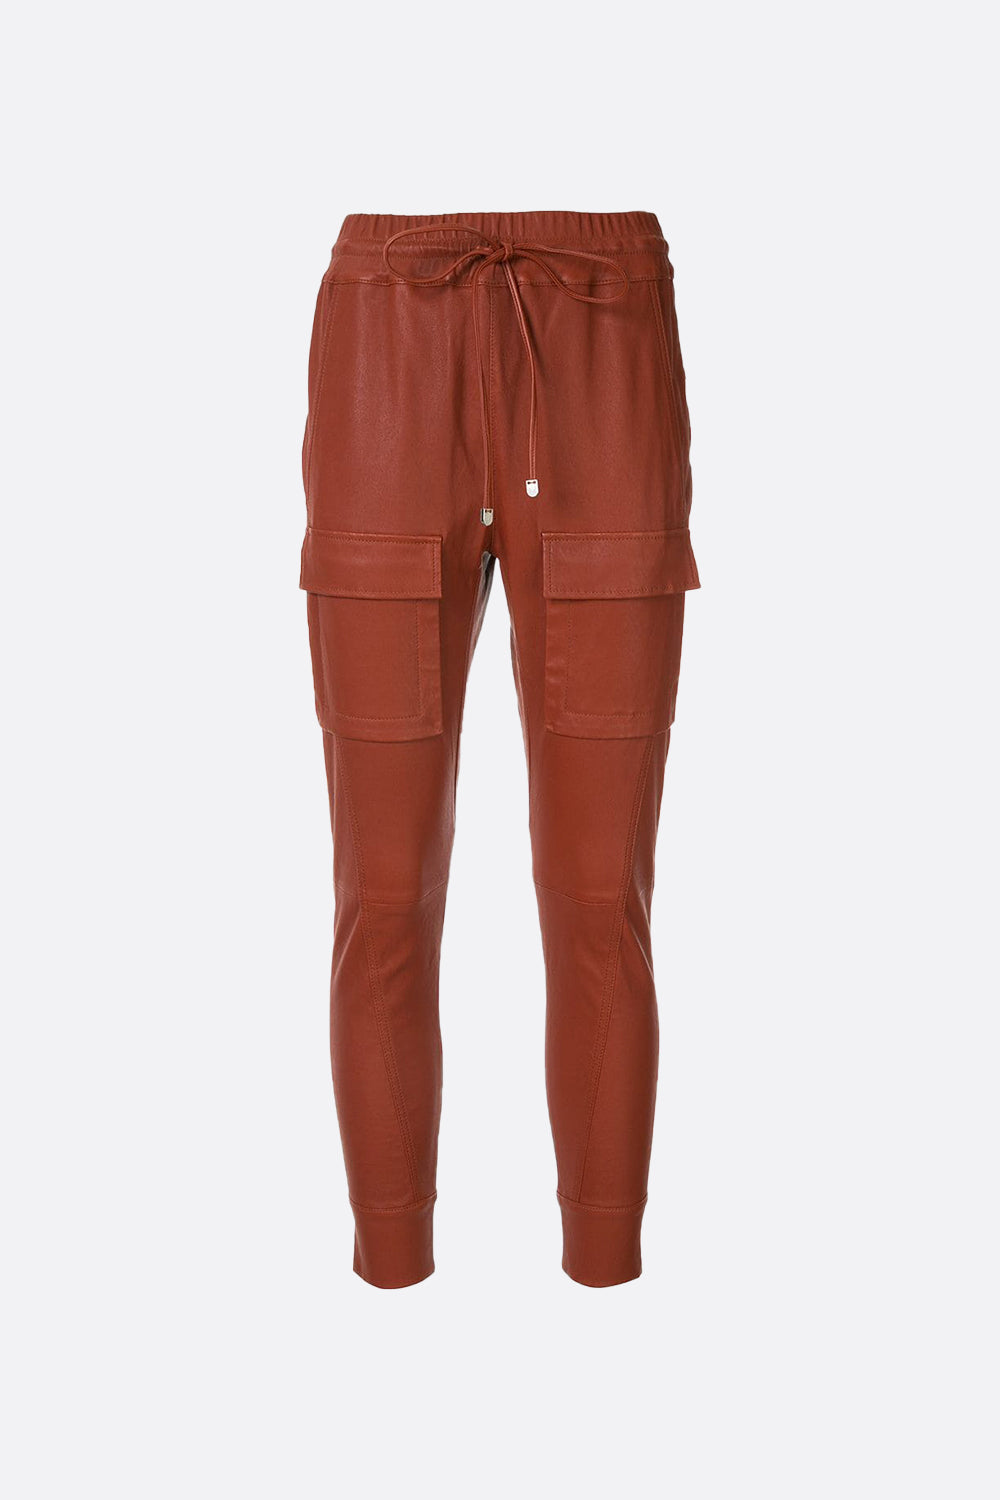 OPEN SEASON STRETCH LEATHER PANT